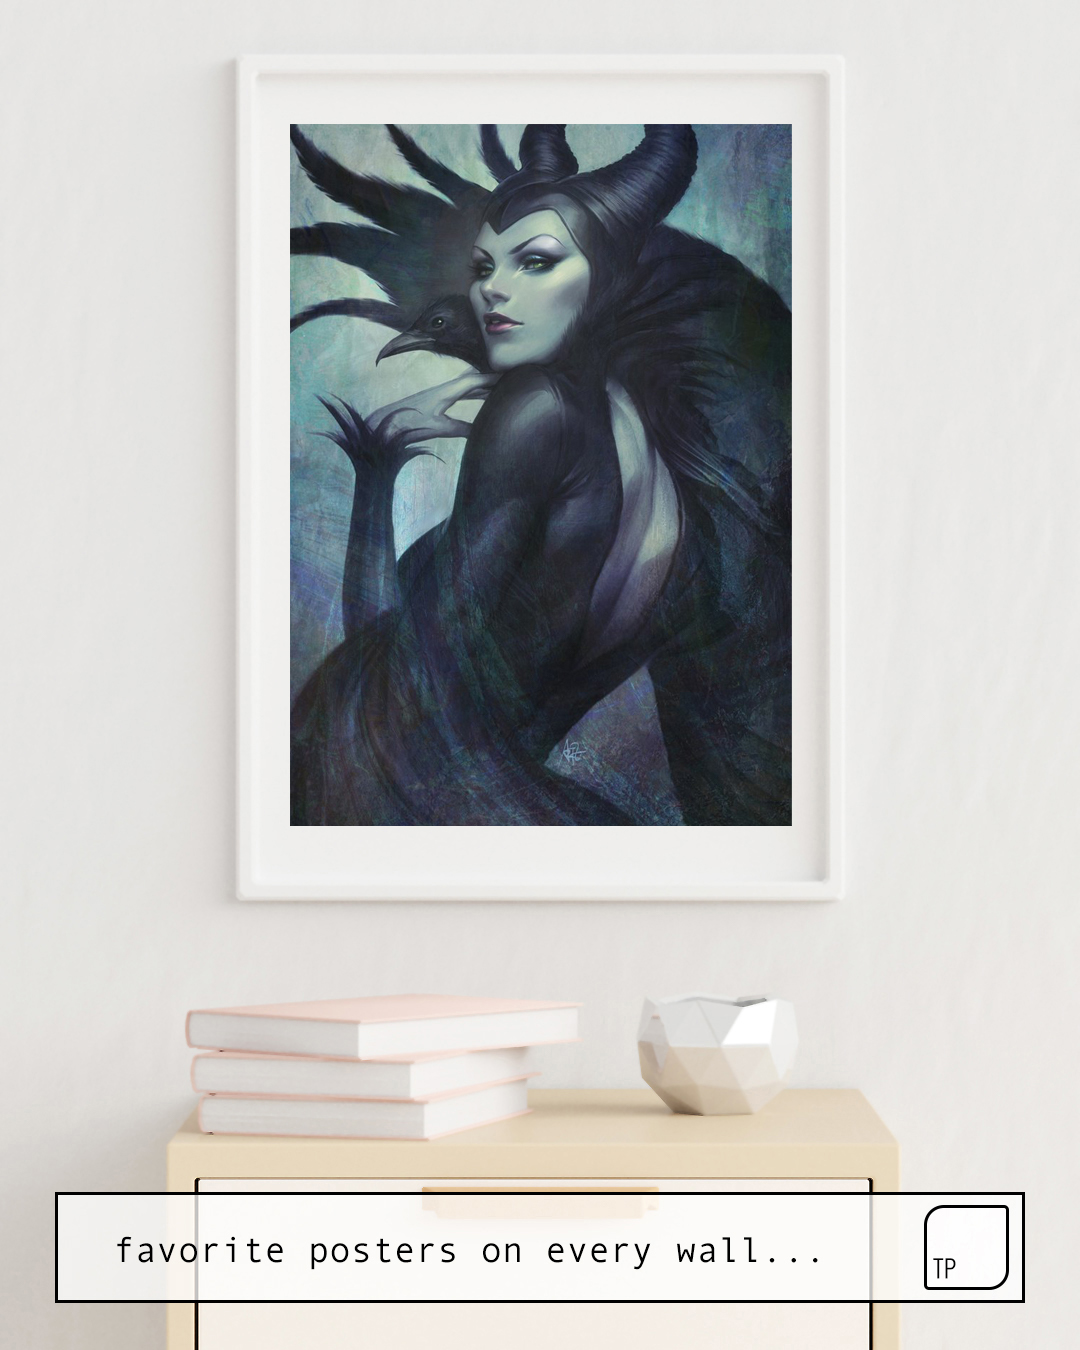 The photo shows an example of furnishing with the motif WICKED by Stanley Artgerm Lau as mural